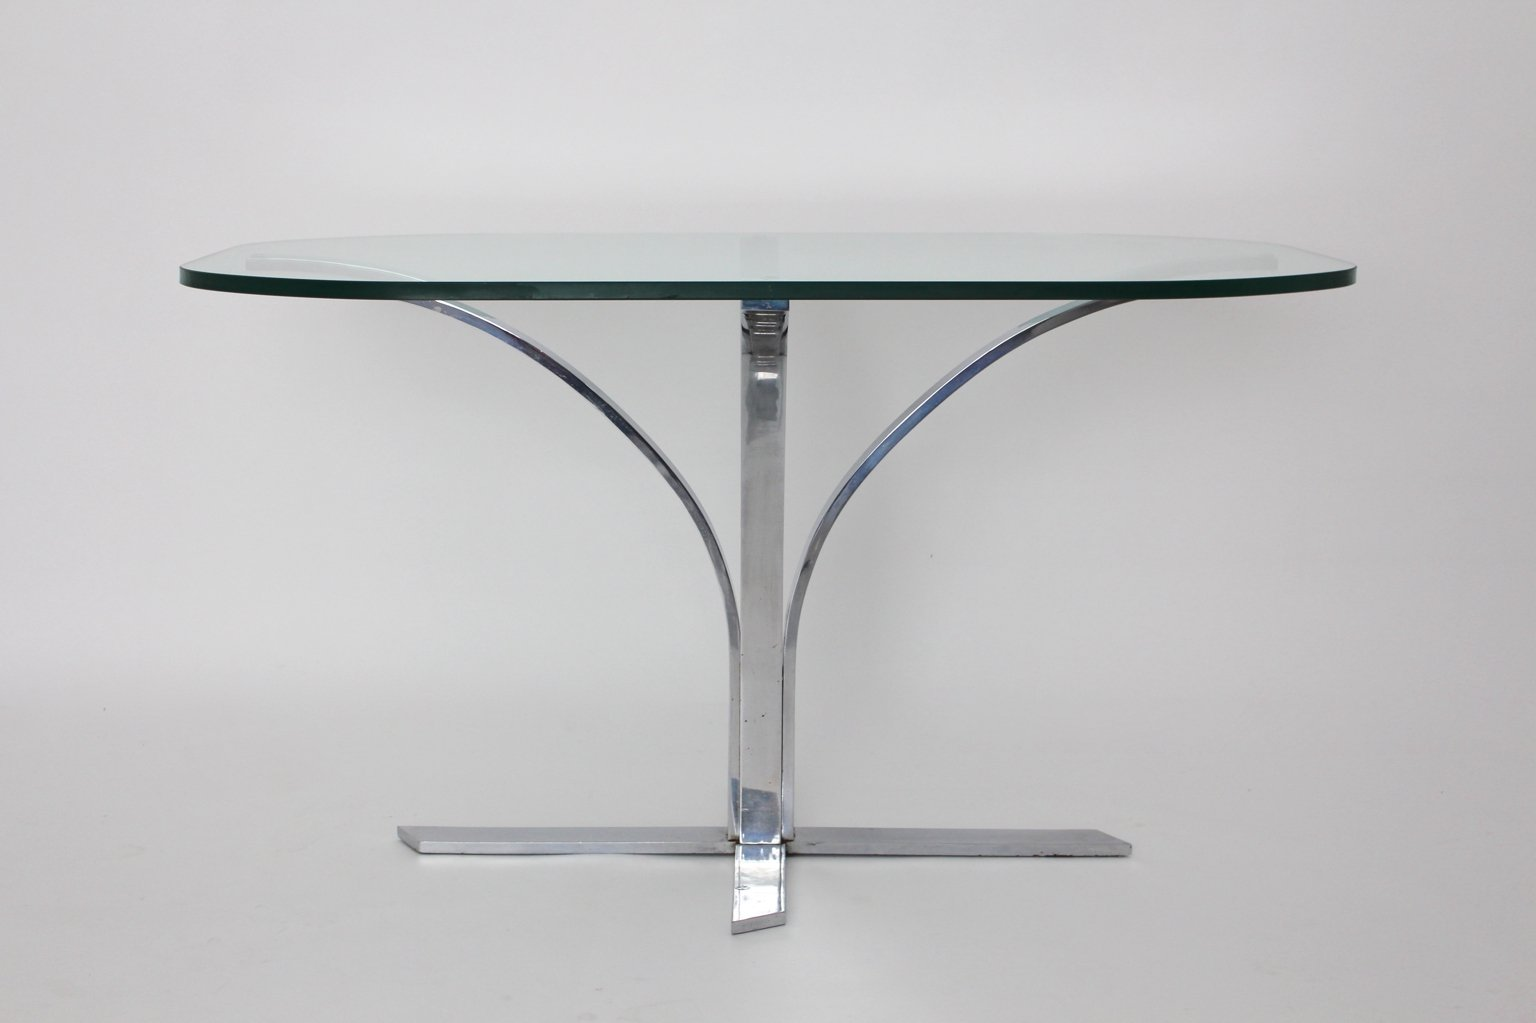 german glass and chrome dining table s for sale at pamono - german glass and chrome dining table s